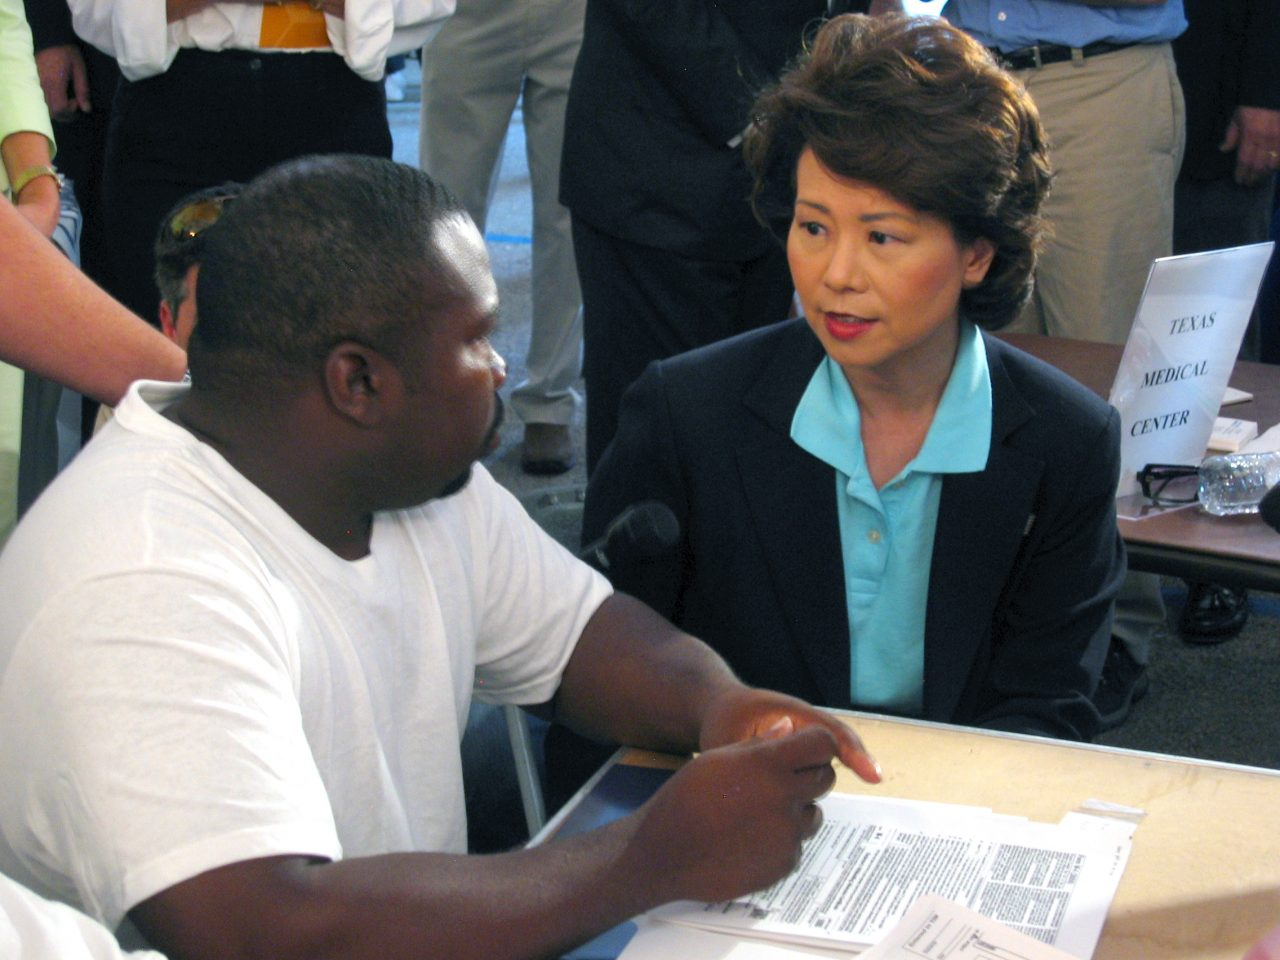 Secretary Elaine Chao talking to a displaced worker at an employment center in the gulf region after Hurricane Katrina.